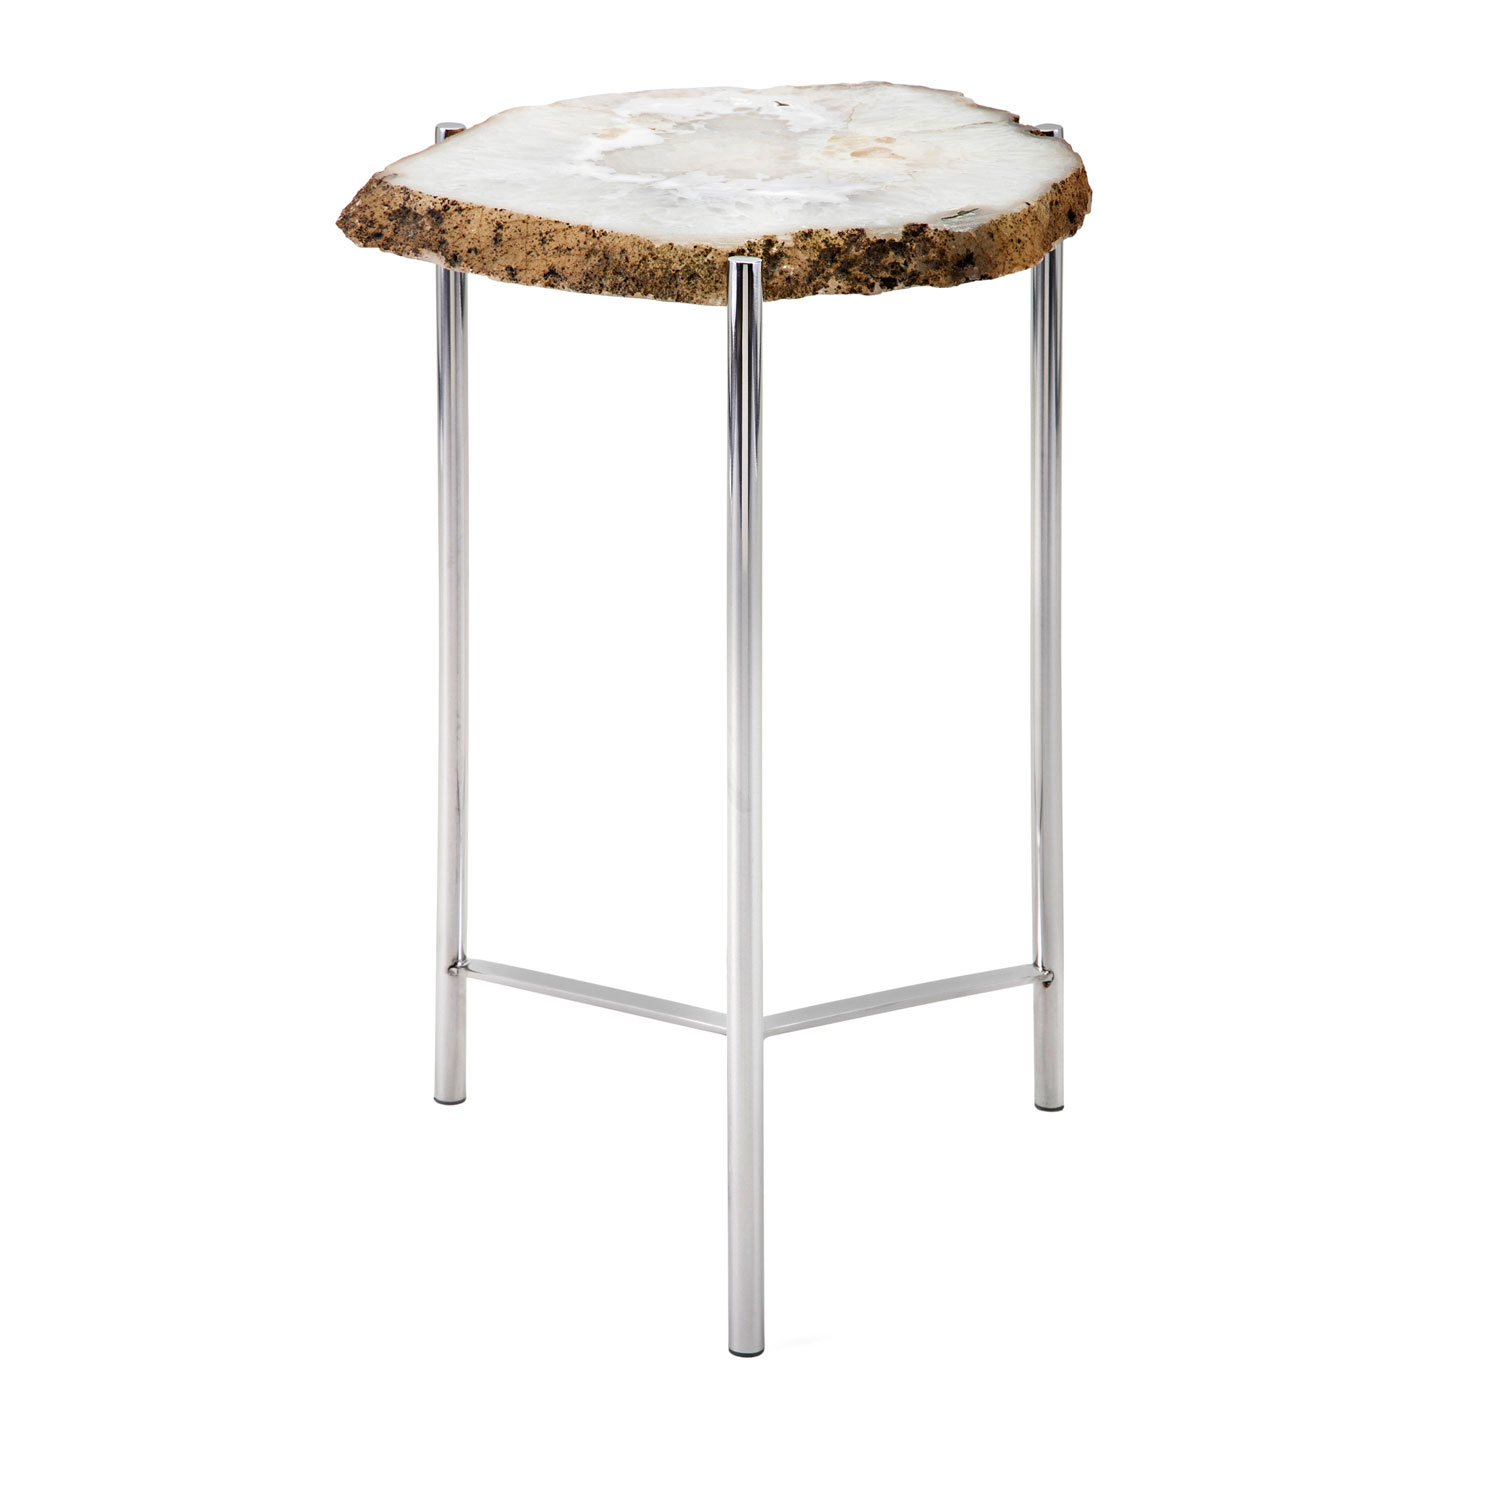 imax giselle agate table bellacor glass accent hover zoom gold wood coffee wardrobe furniture white round linens decorative accessories small dark telephone end with charging